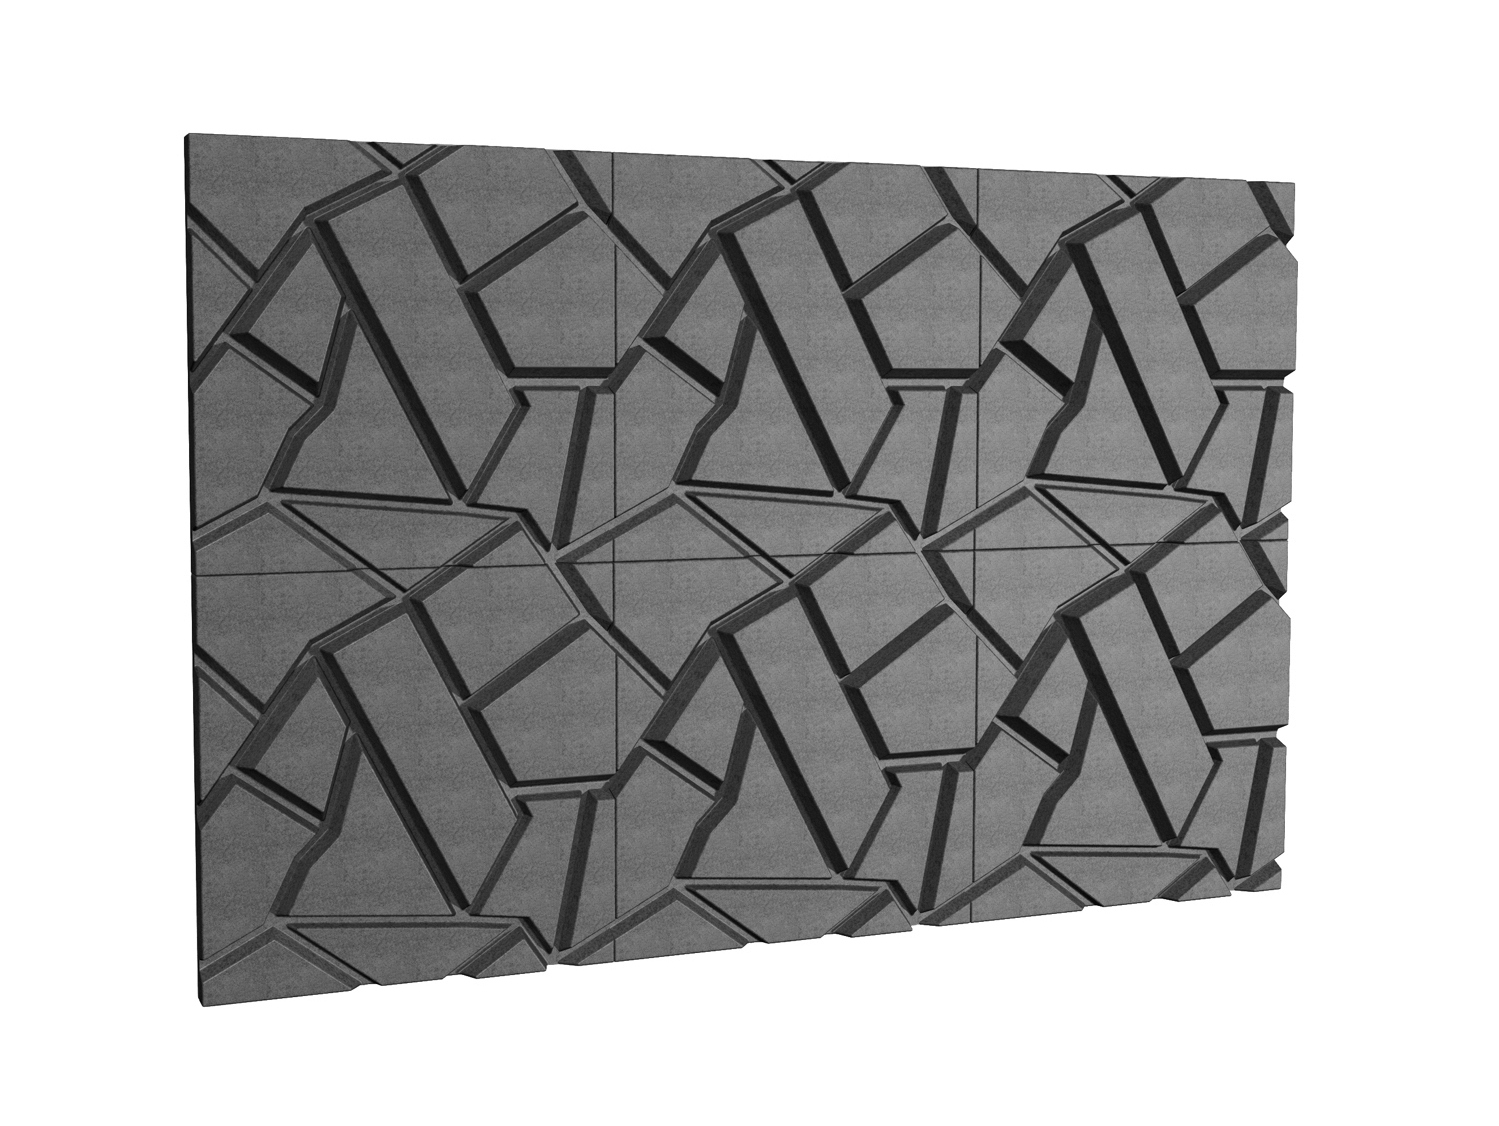 Sound Absorbing Insulation : Foam decorative acoustical panels cropfield by johanson design